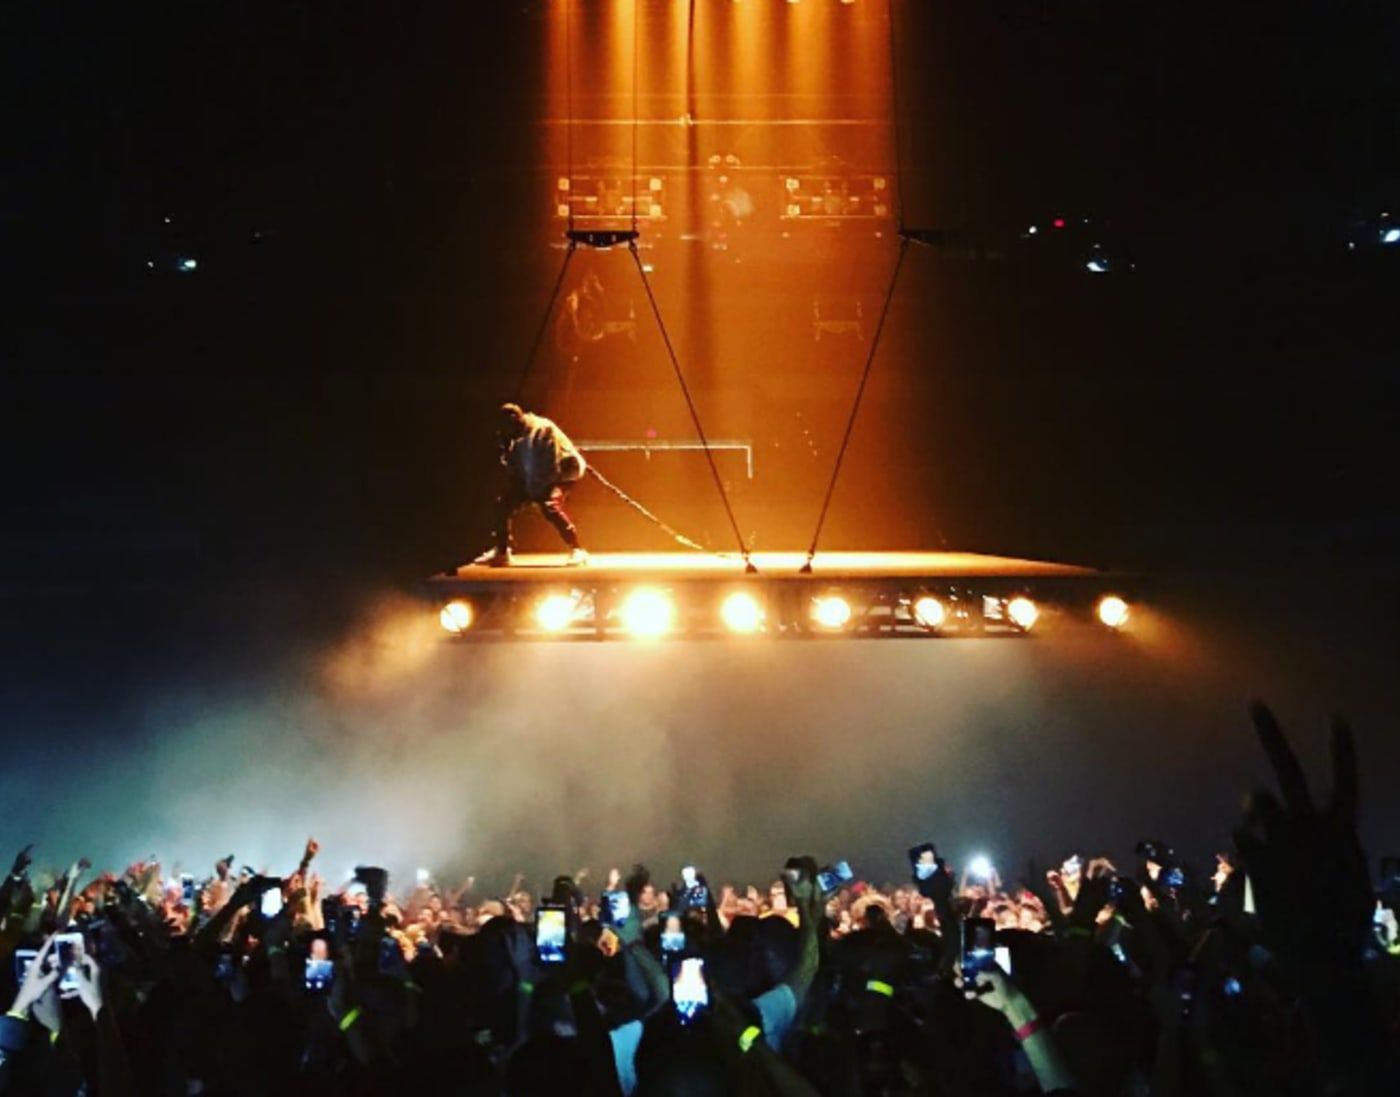 This is the thumbnail for a post on Kanye West's tour.